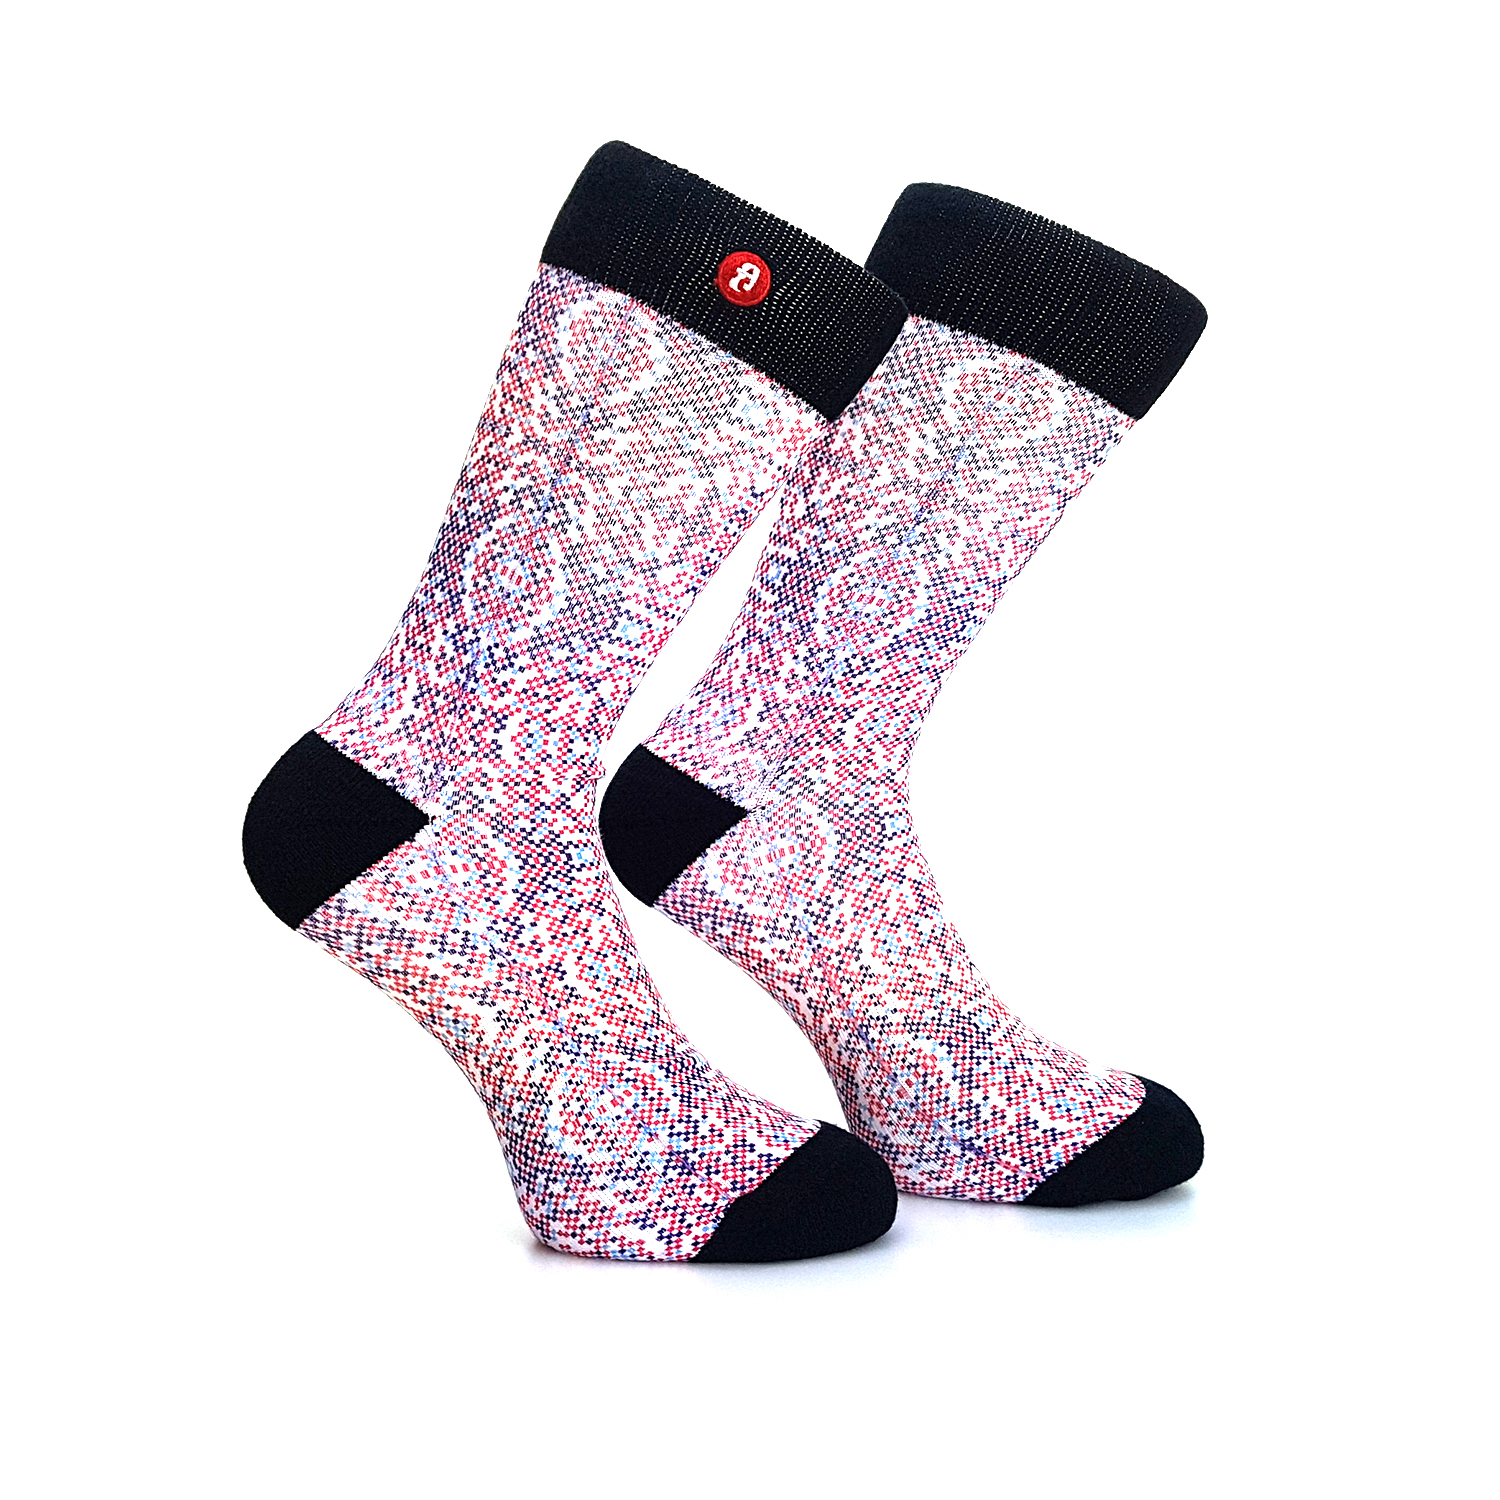 Looking for tailor made Full Colour Printed Sublimation socks. Design your own Happy socks